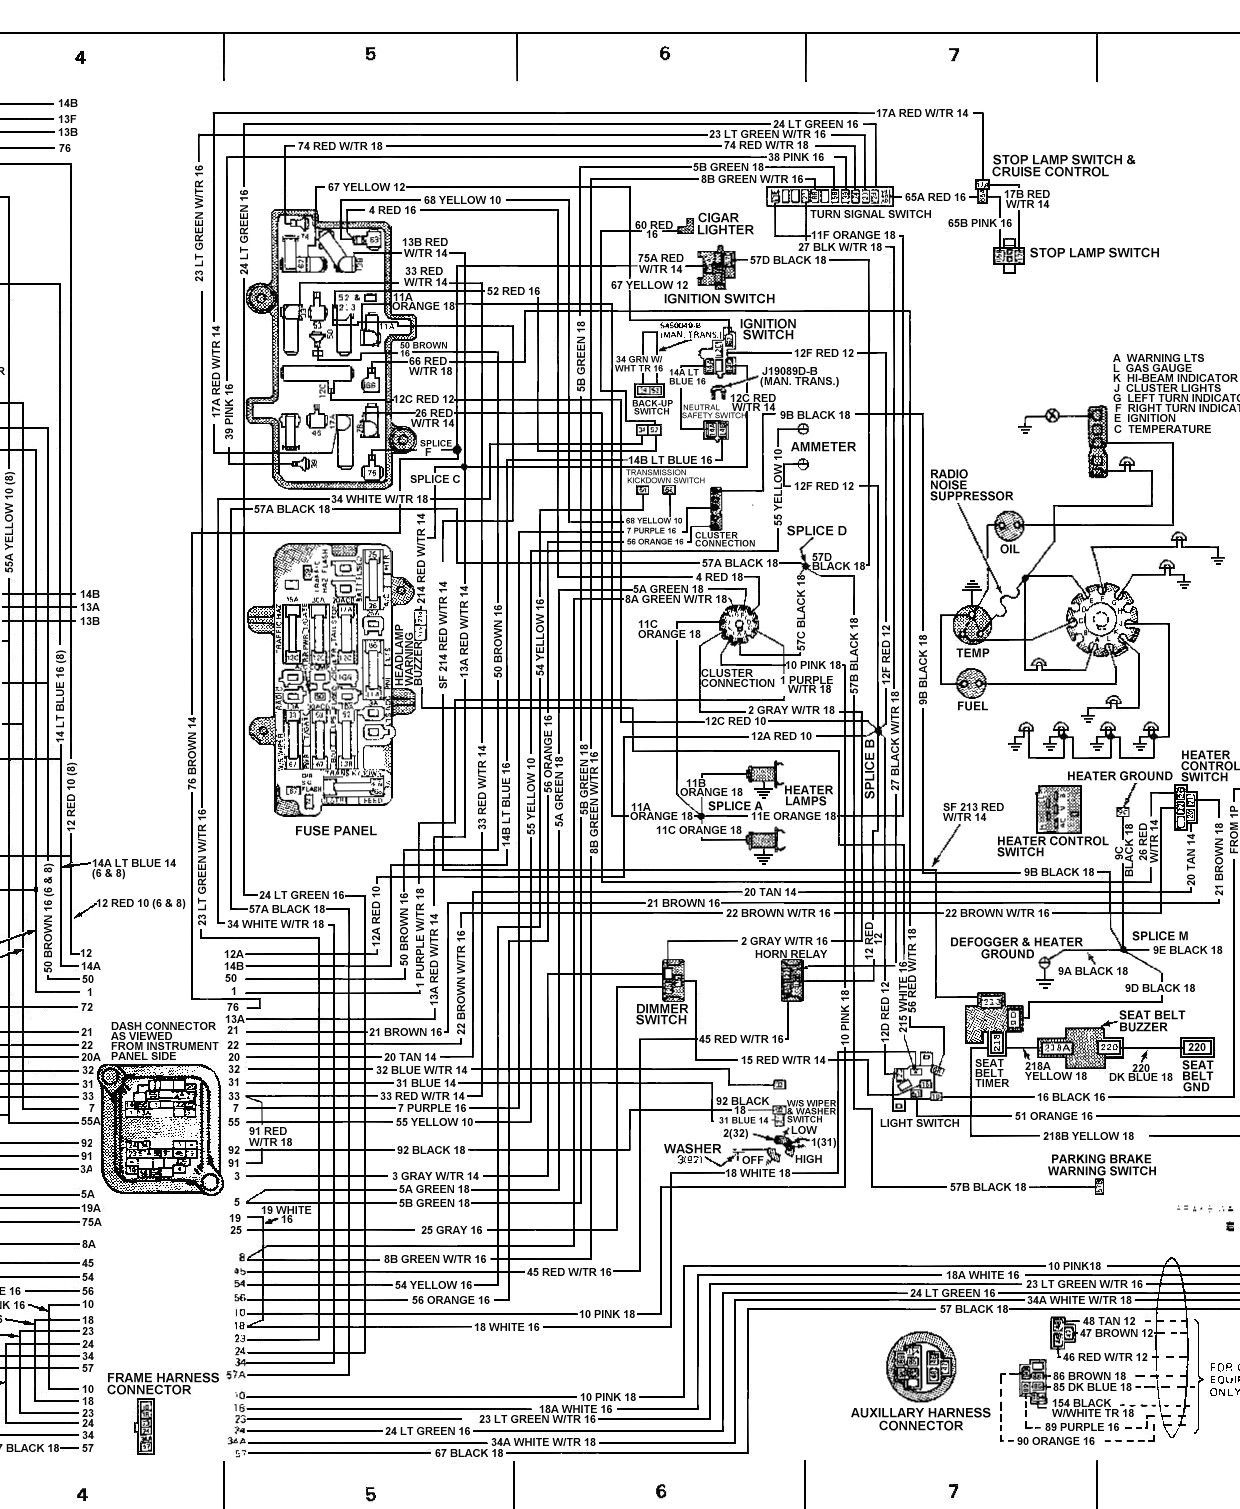 2004 Nissan Frontier Wiring Diagram Diagrams Schematics Best 2007 In At Nissan Frontier 2006 Vw Jetta Nissan